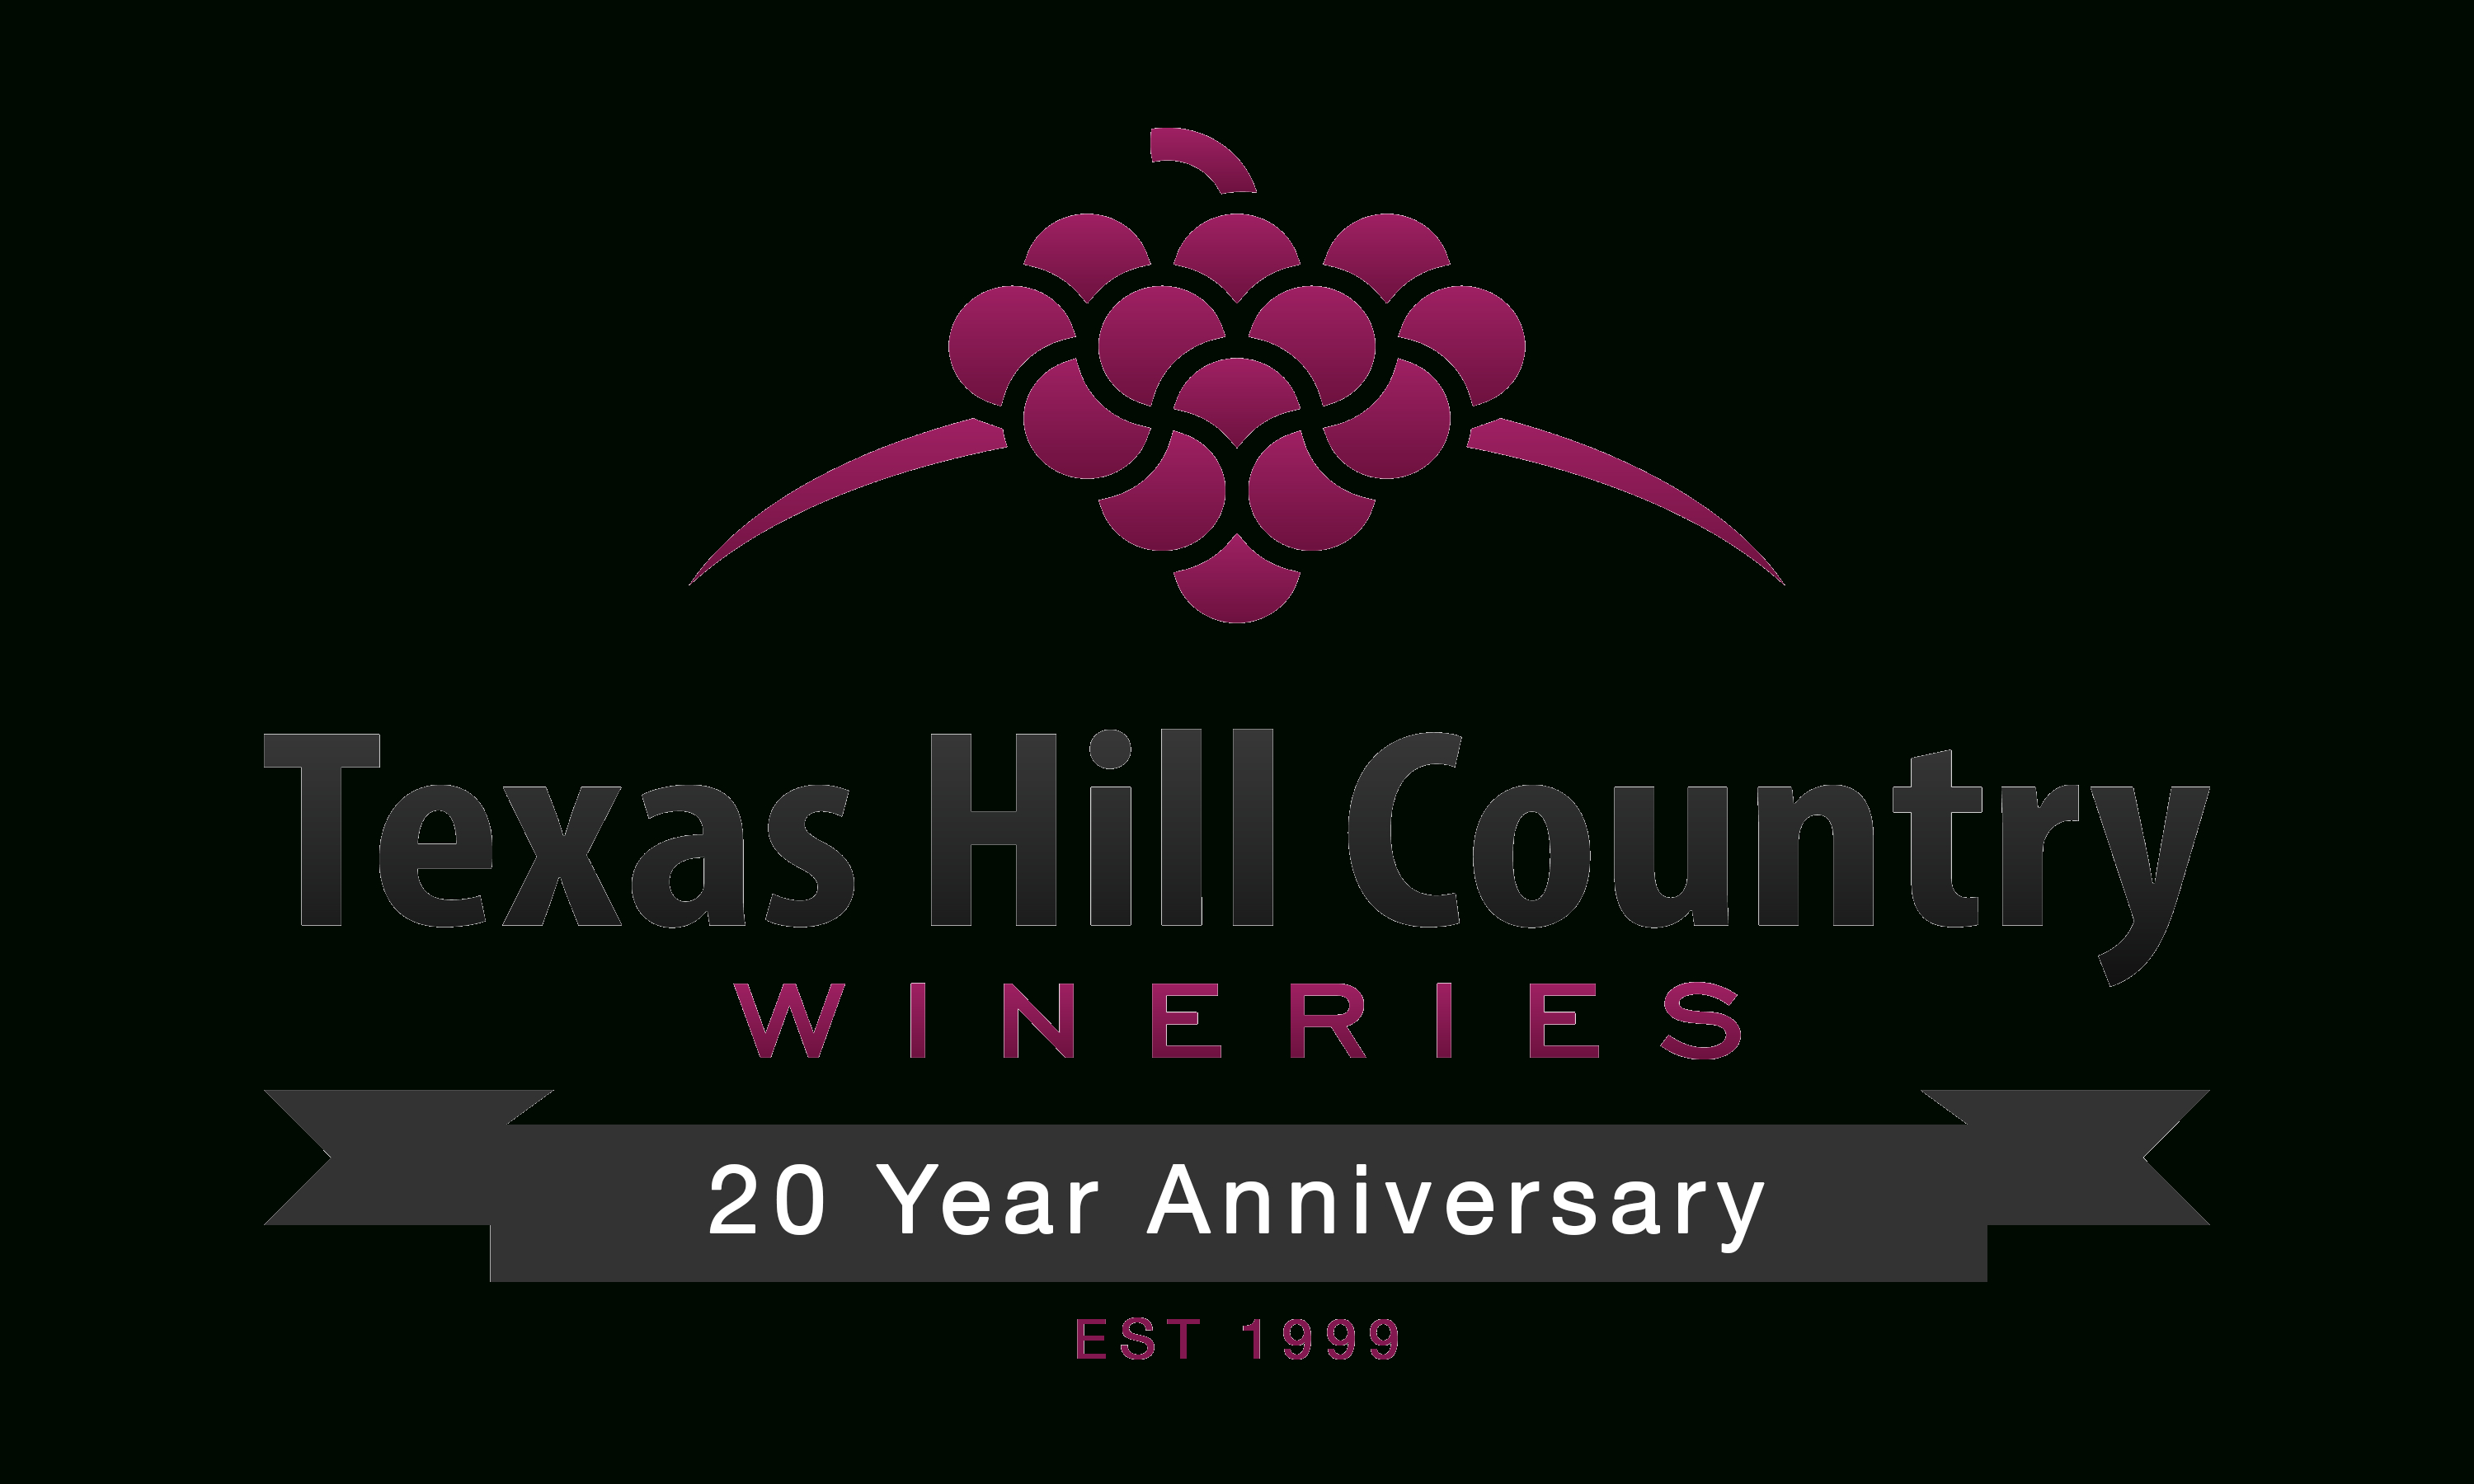 Texas Hill Country Wineries - Texas Hill Country Wineries - Texas Hill Country Wine Trail Map